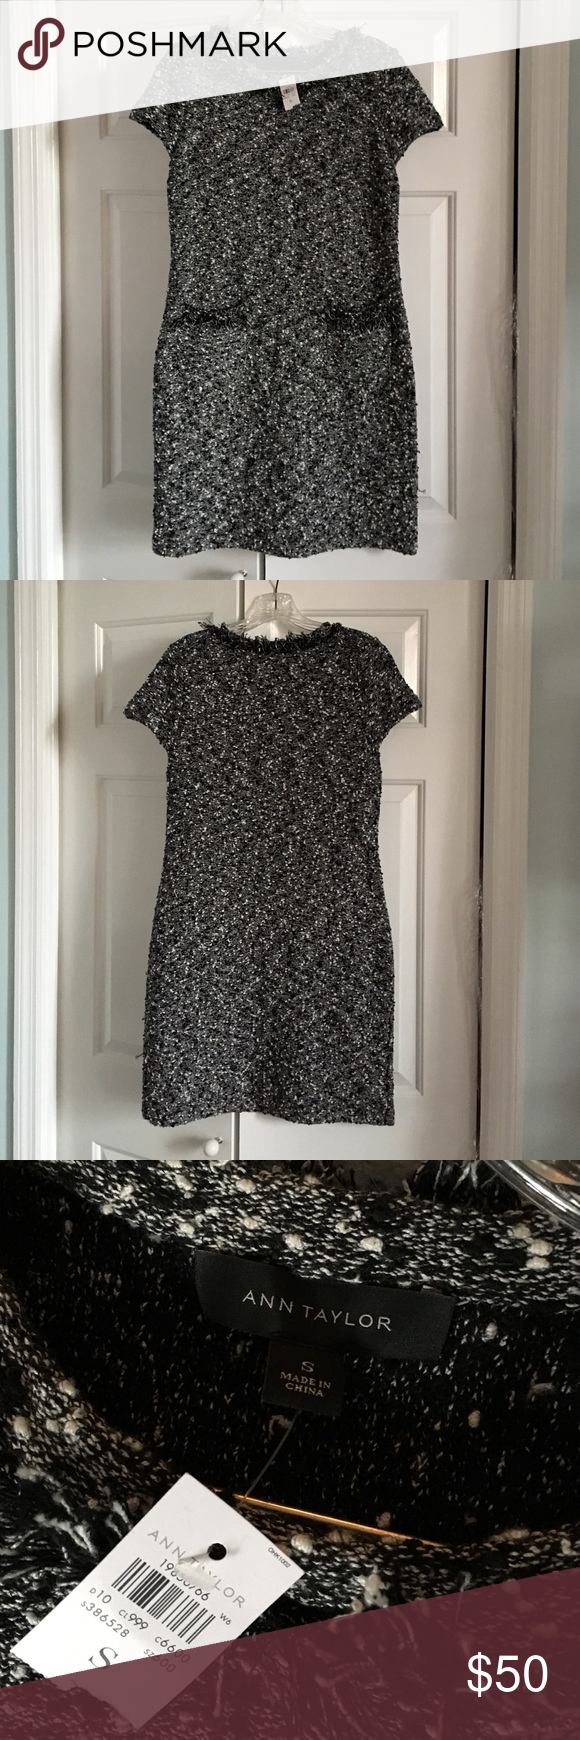 Ann Taylor Black and White Sweater Dress Size small.  Black and white sweater dress with fringe detail on collar and 2 front pockets.  Never been worn; tags still on.  Stretchy material.  Easy to wear and perfect for office. Ann Taylor Dresses